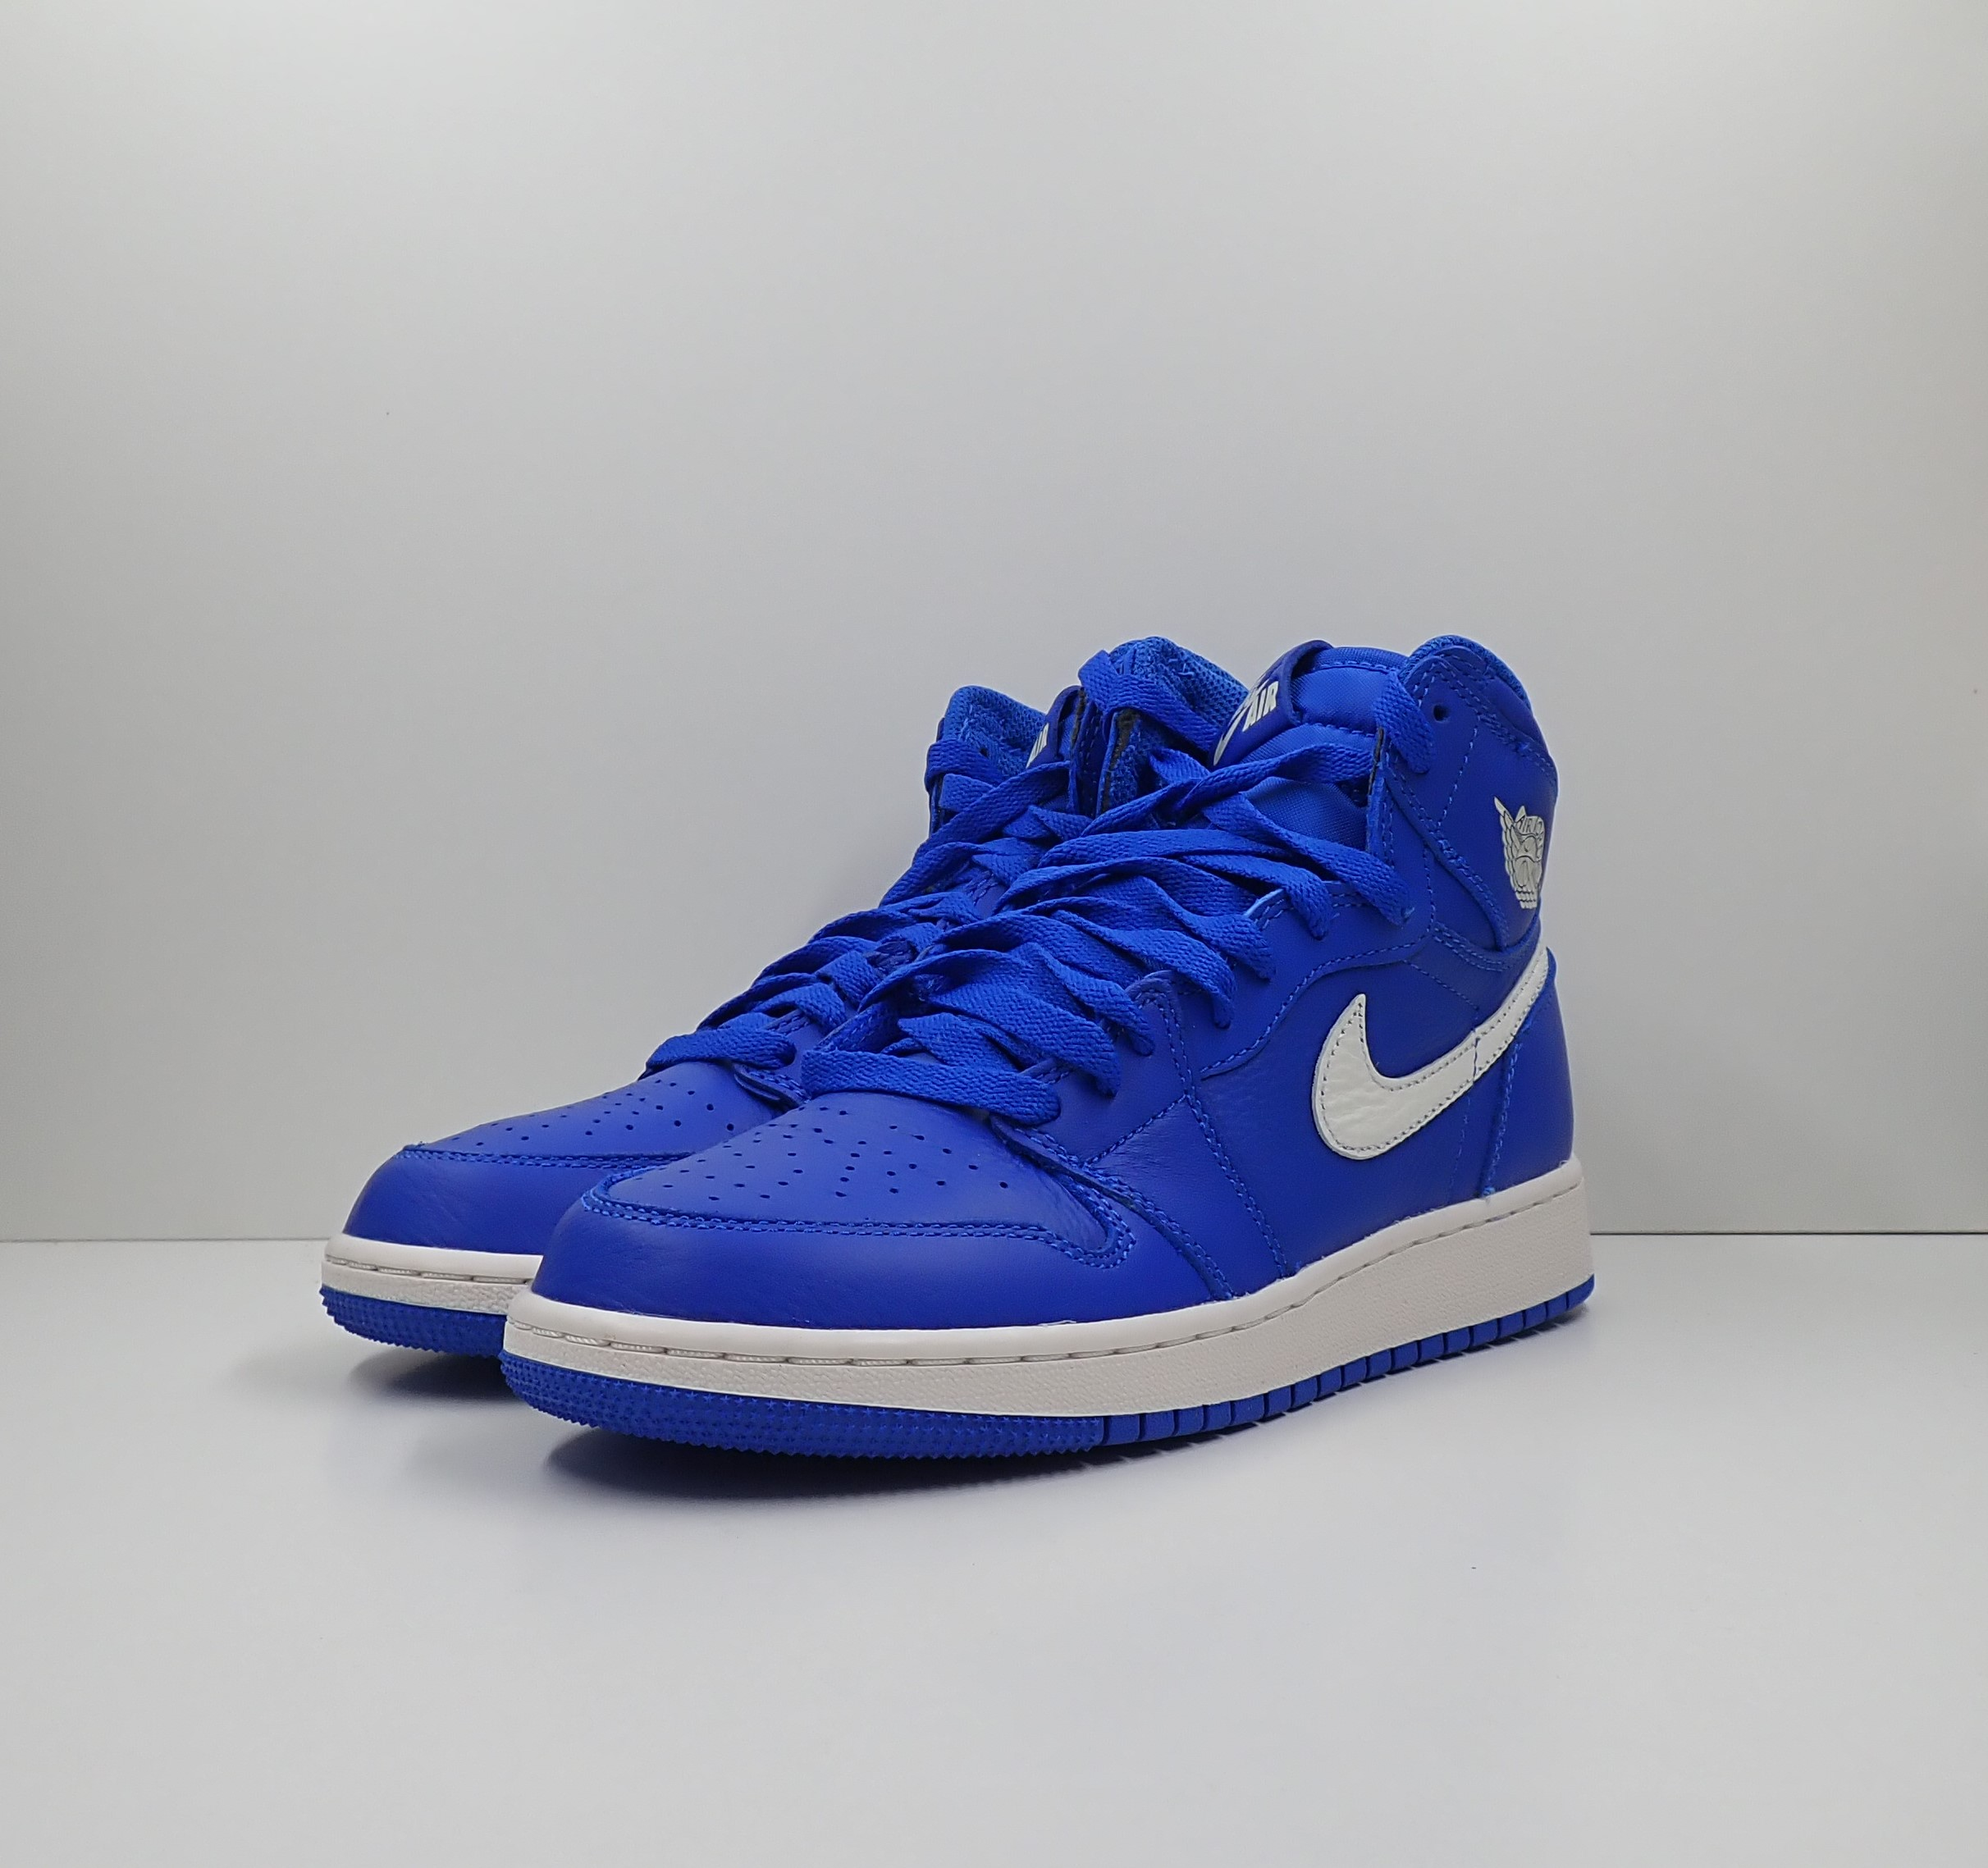 Jordan 1 Retro High OG Hyper Royal (GS)